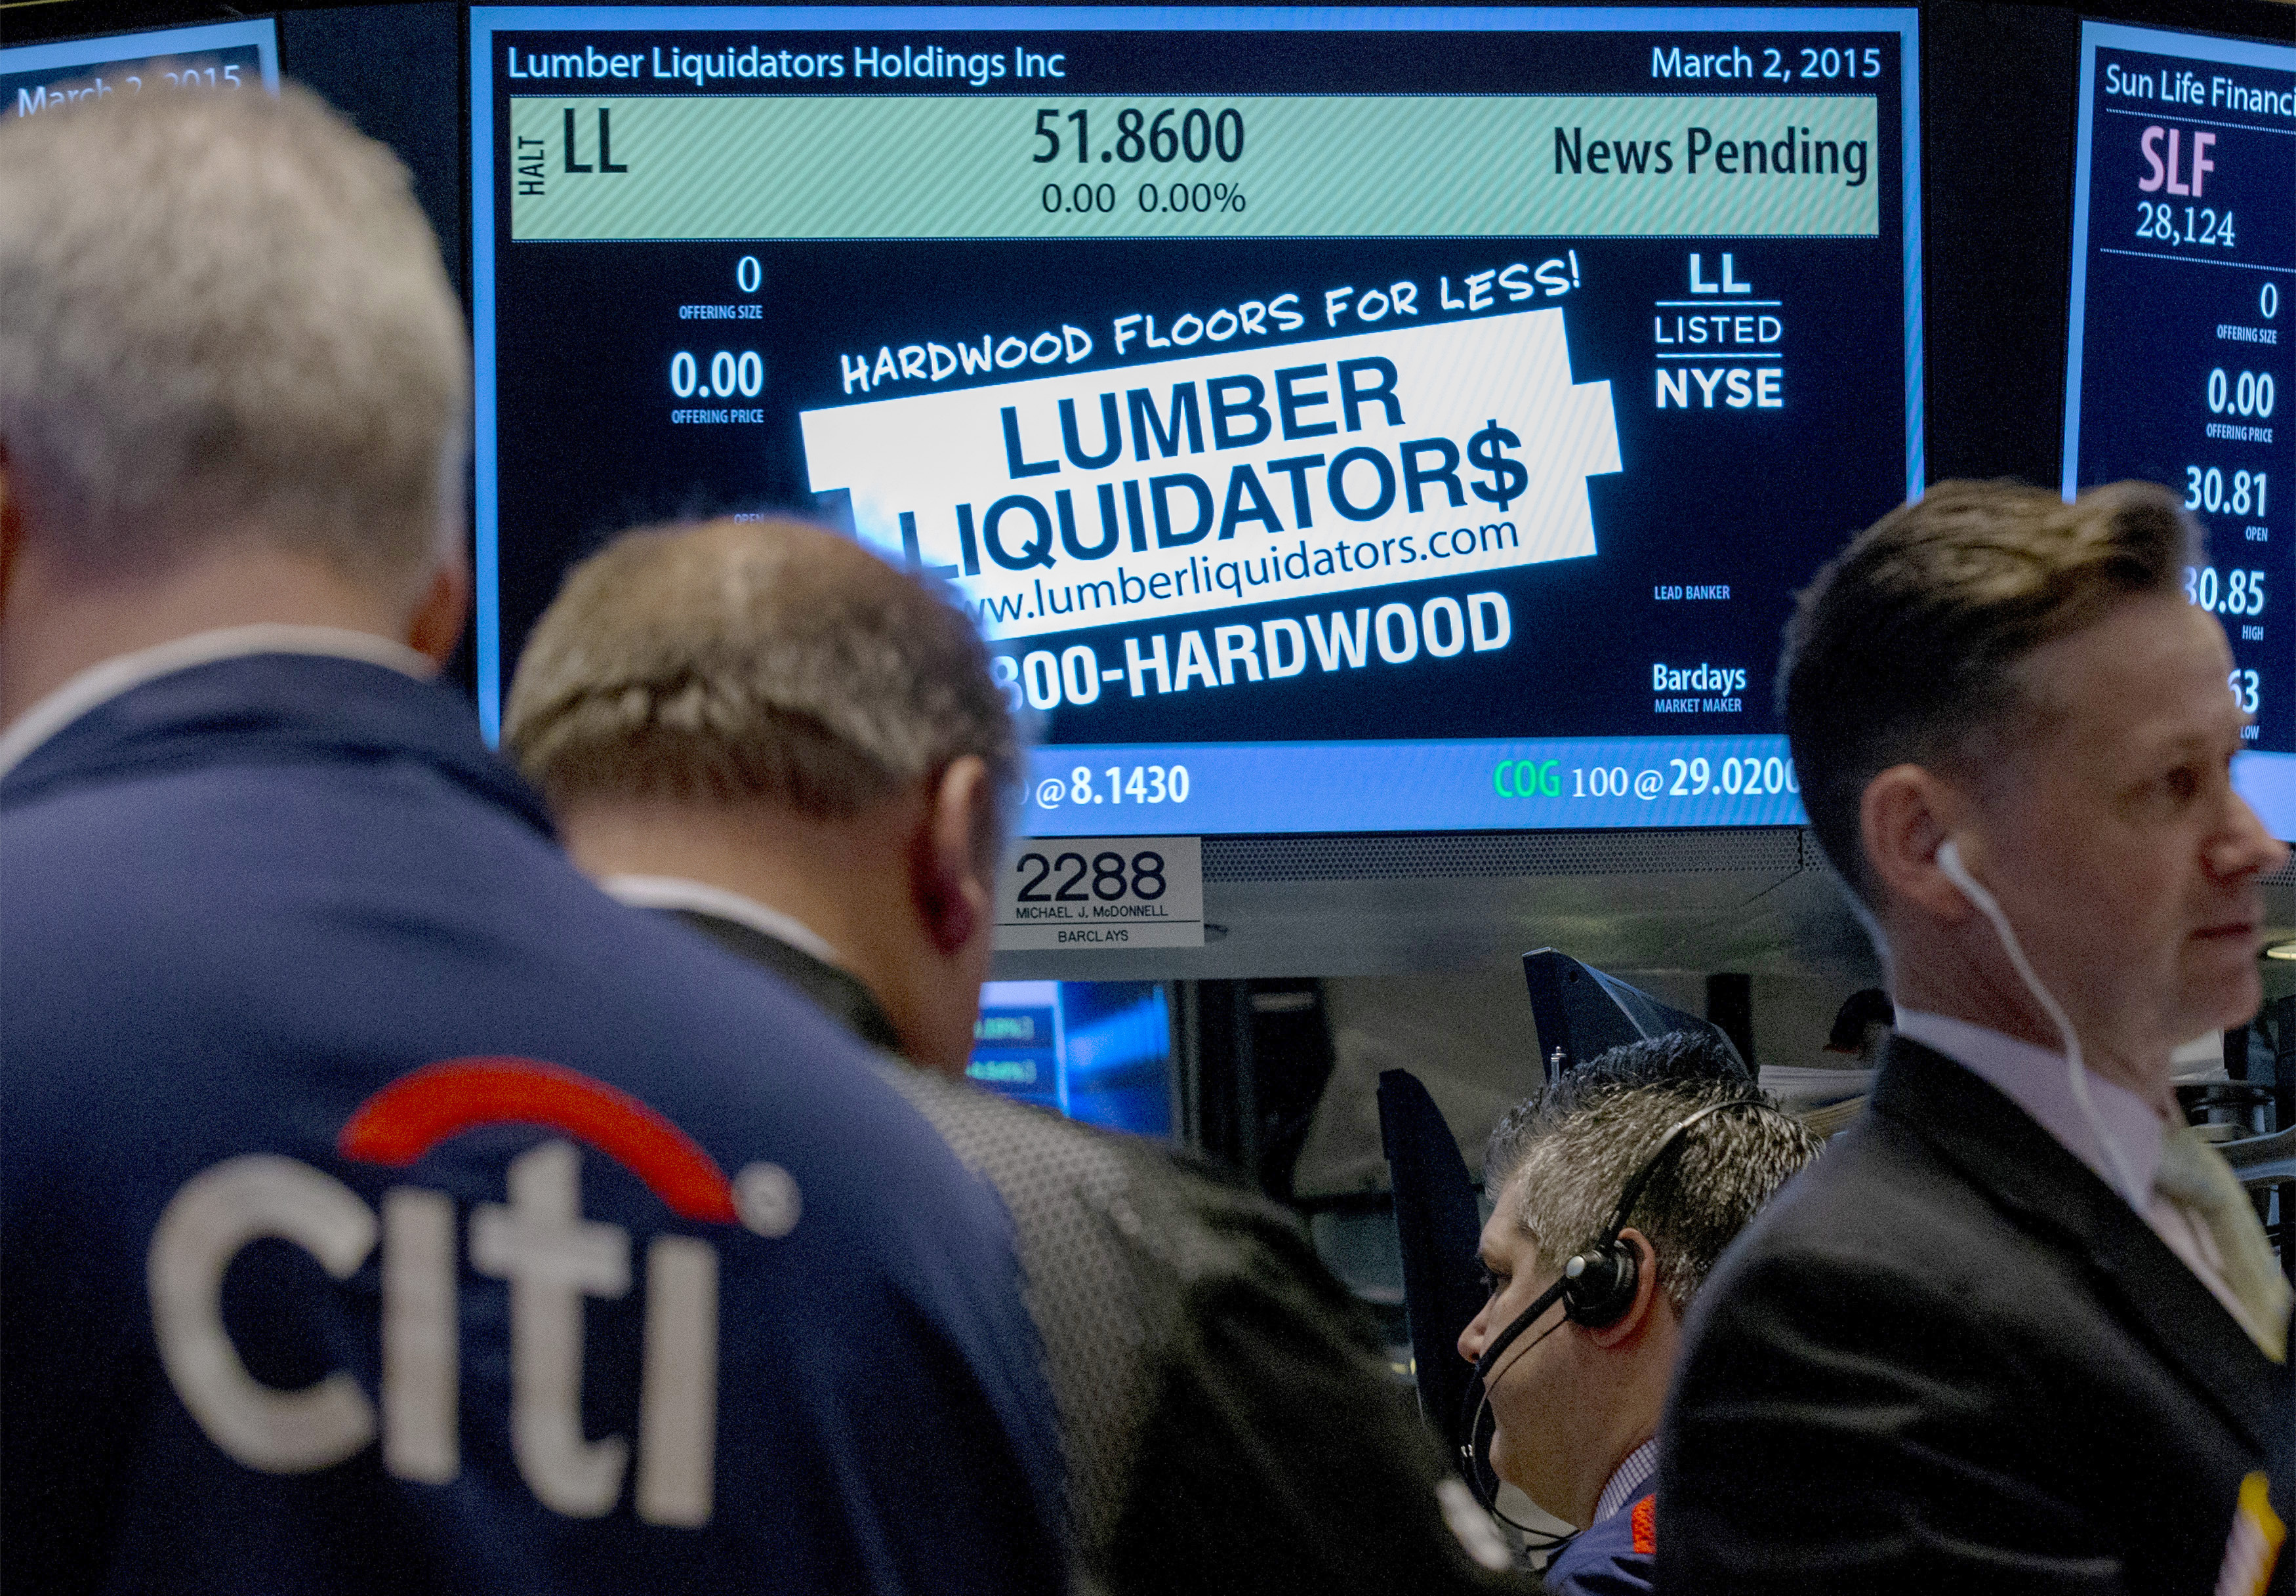 Traders wait for shares of Lumber Liquidators to begin trading on the floor of the New York Stock Exchange